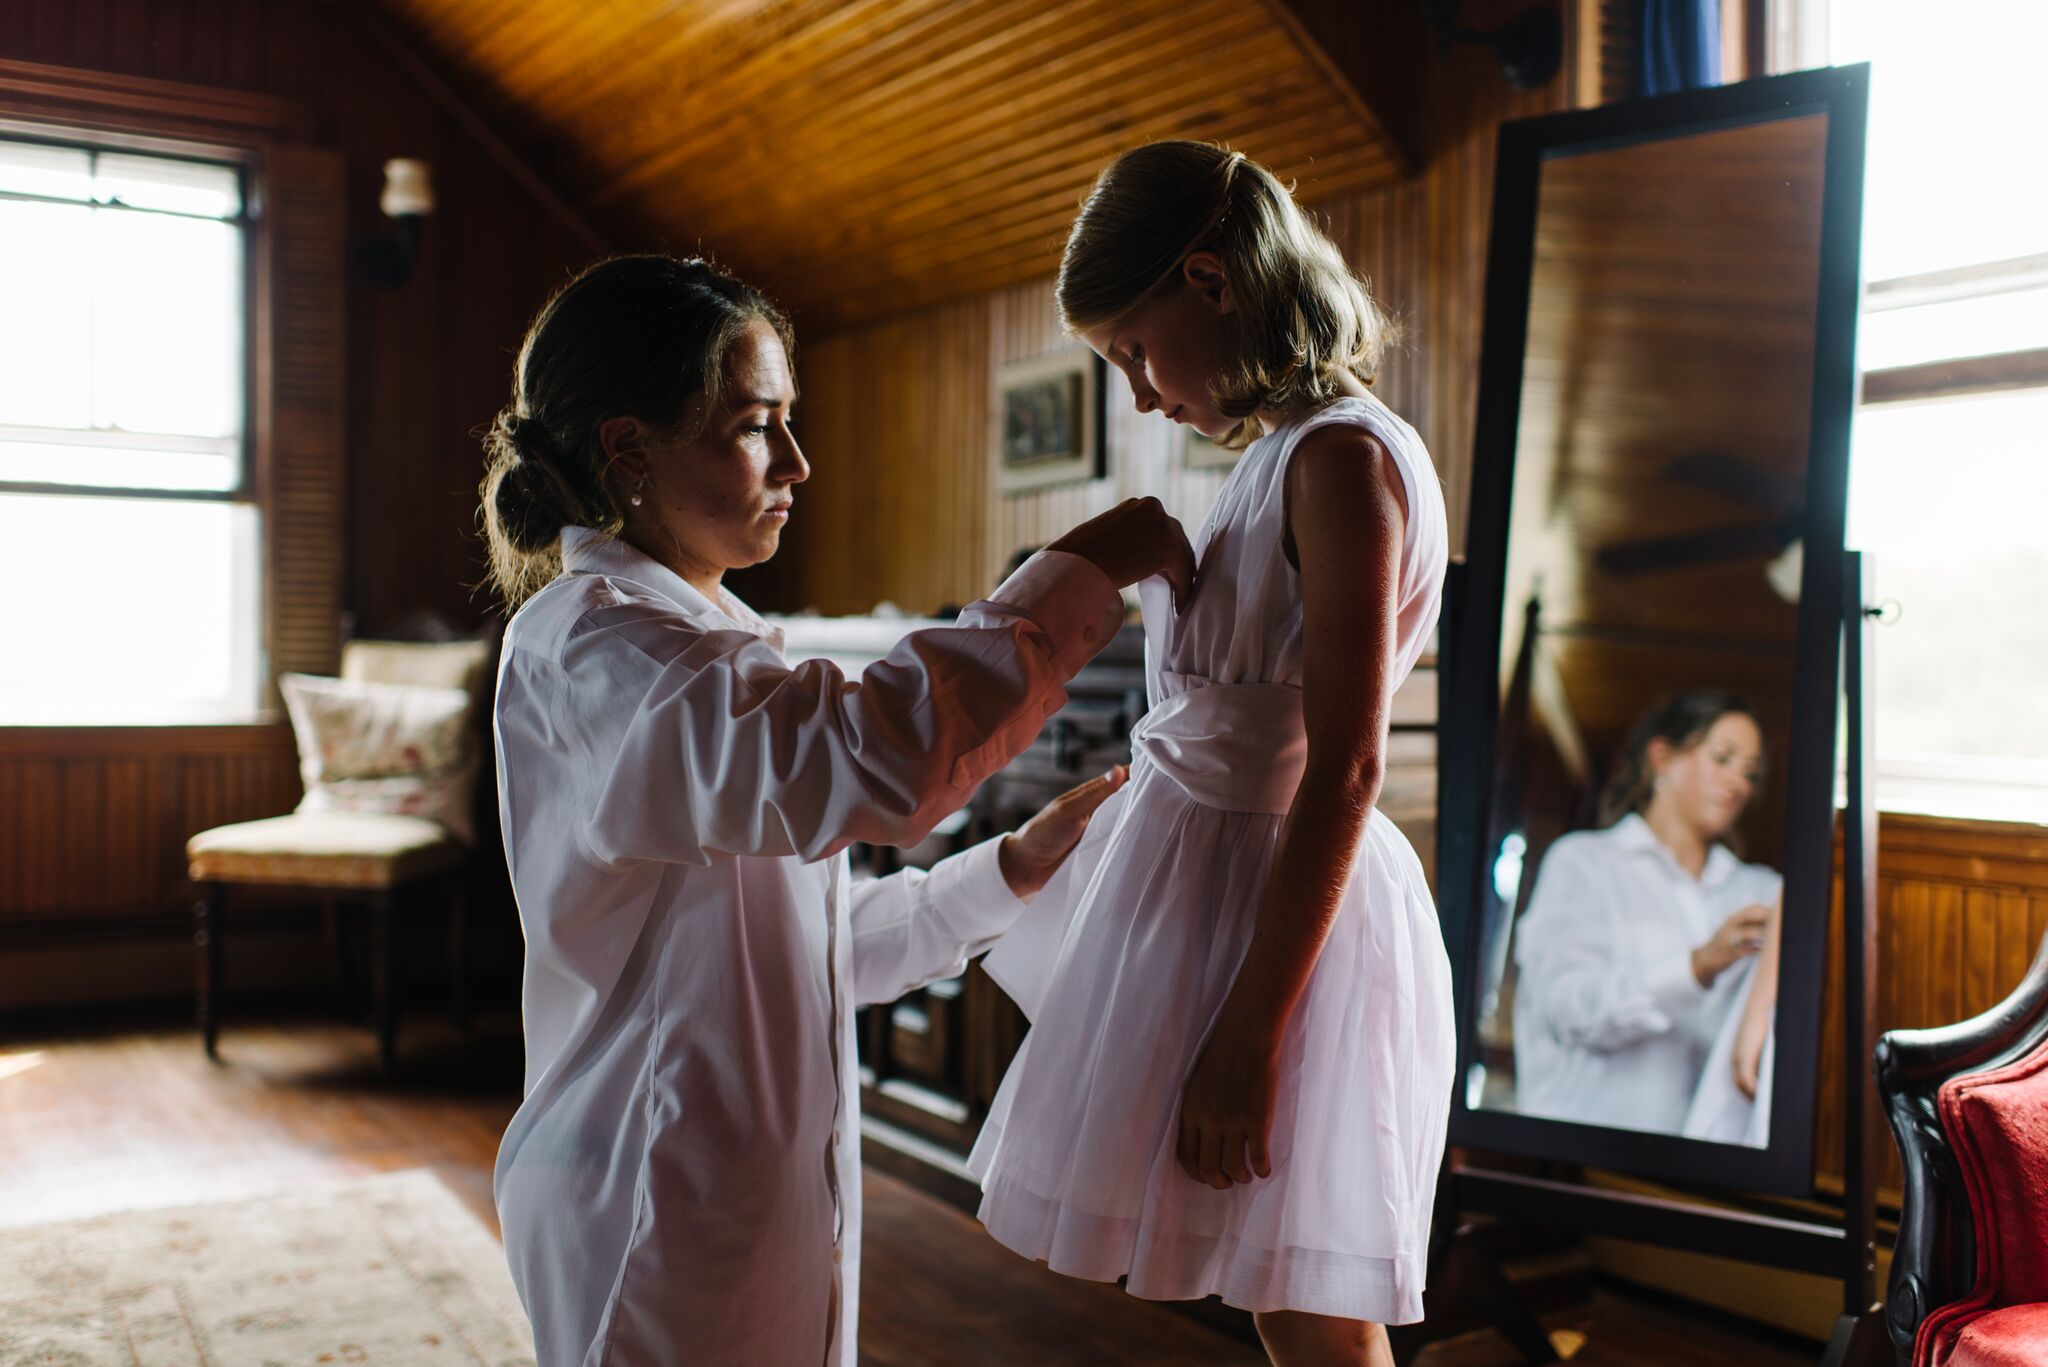 Bride helping dress flower girl at a wedding